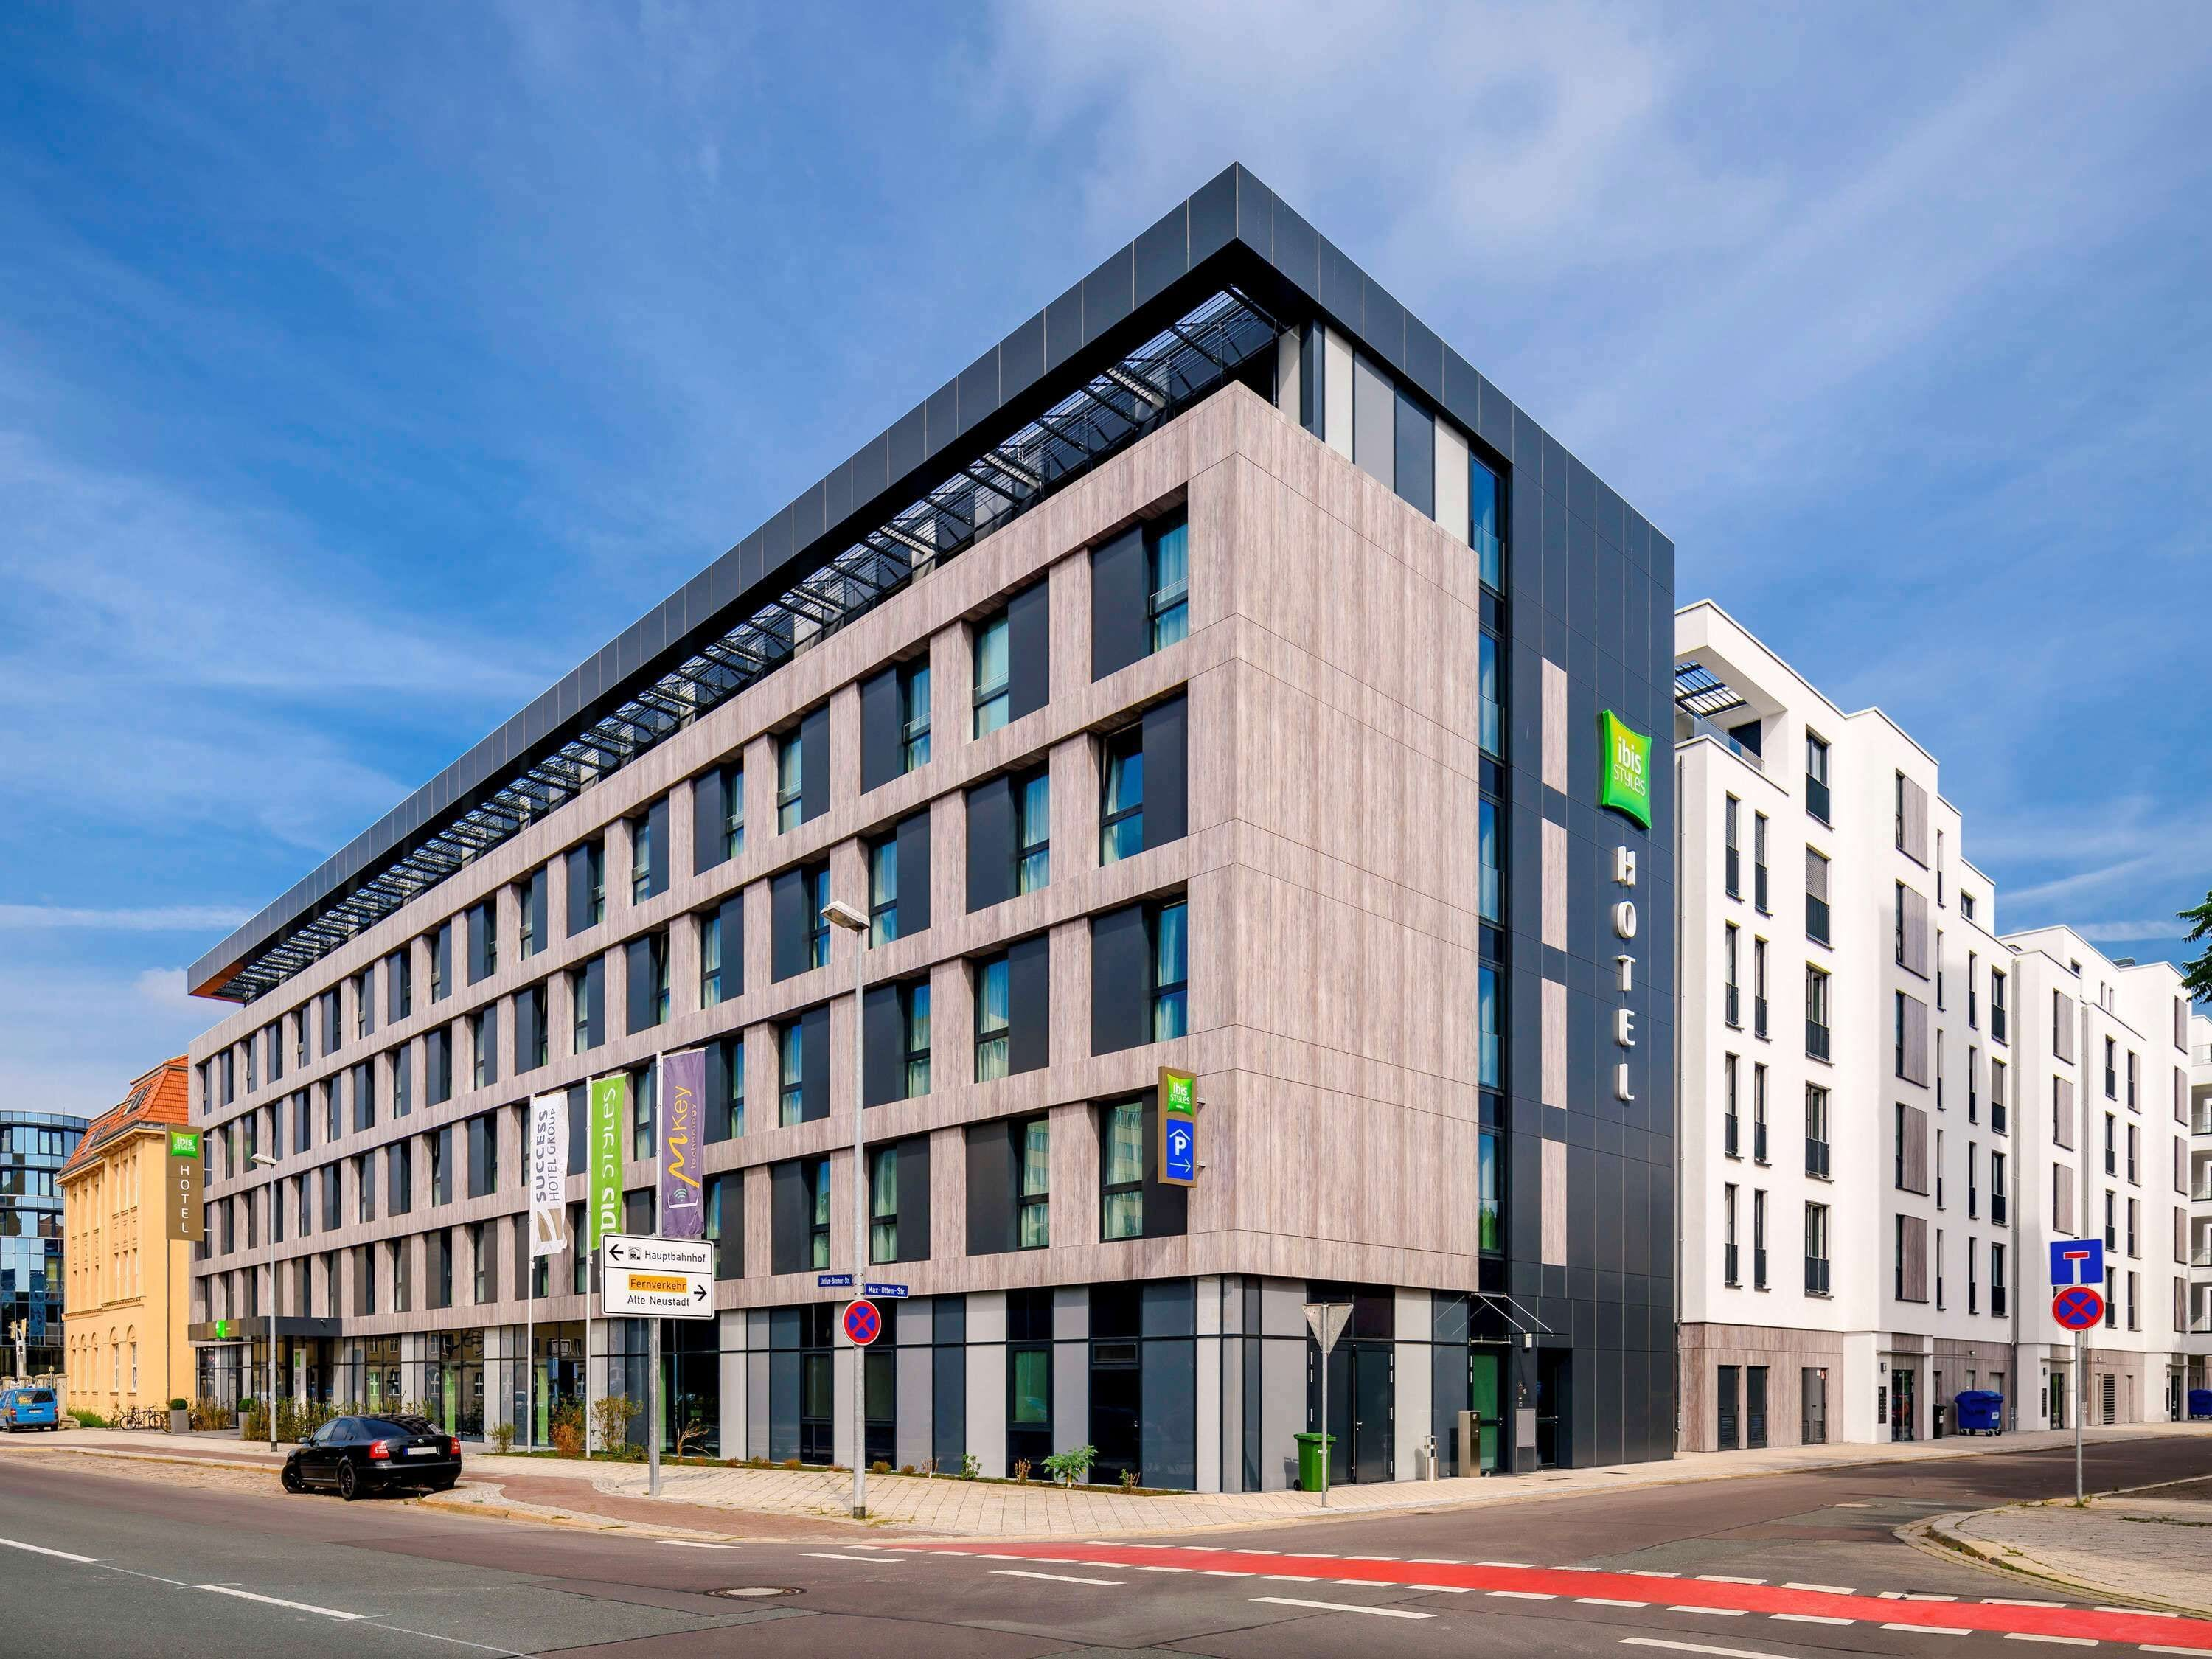 Ibis Styles Magdeburg Magdeburg 2021 Updated Prices Expedia Co Uk